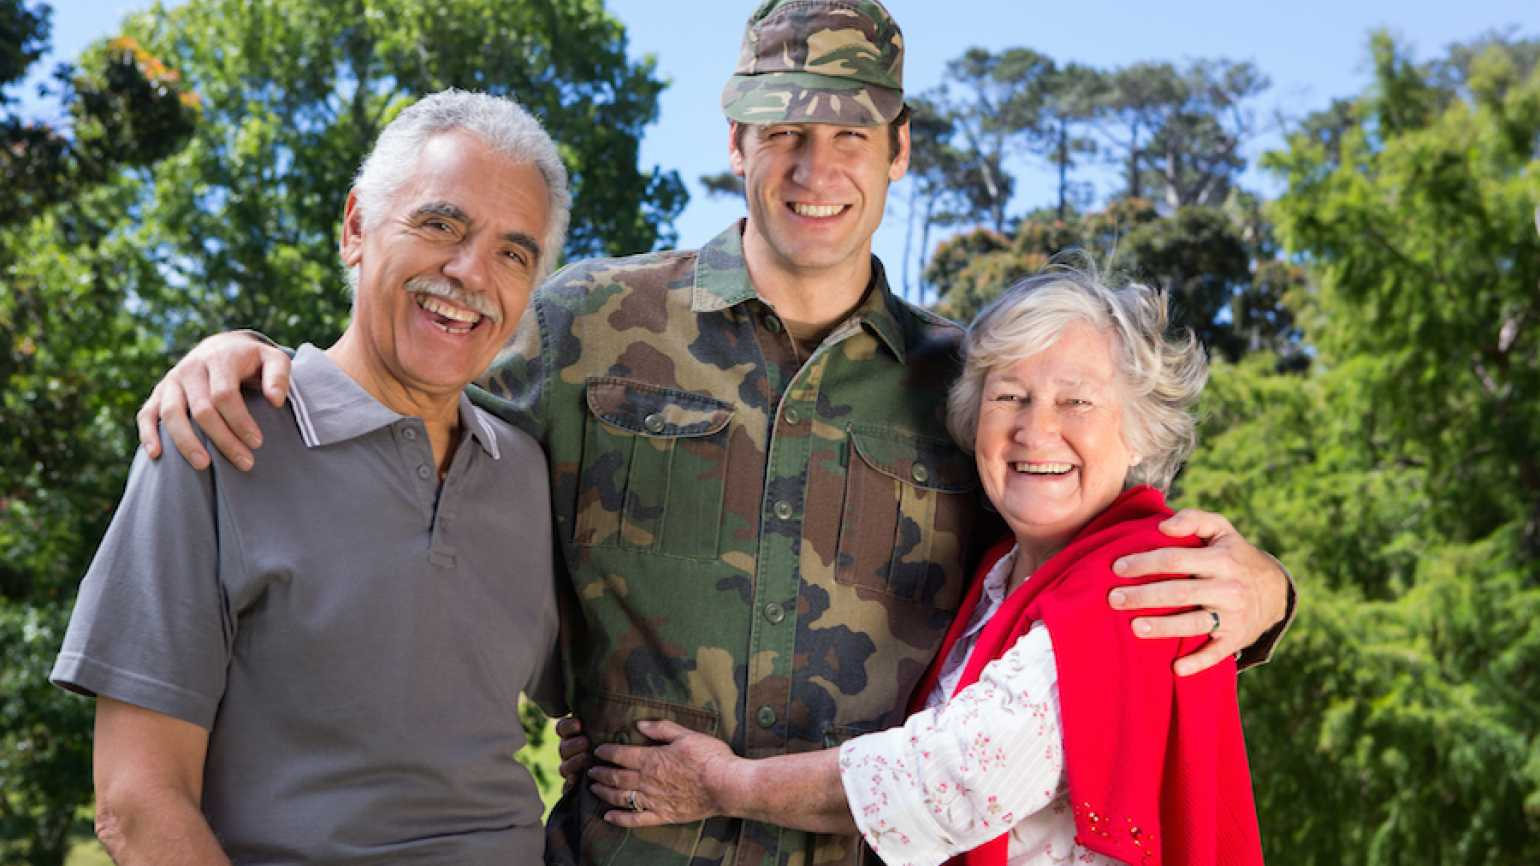 Parents with their soldier son.